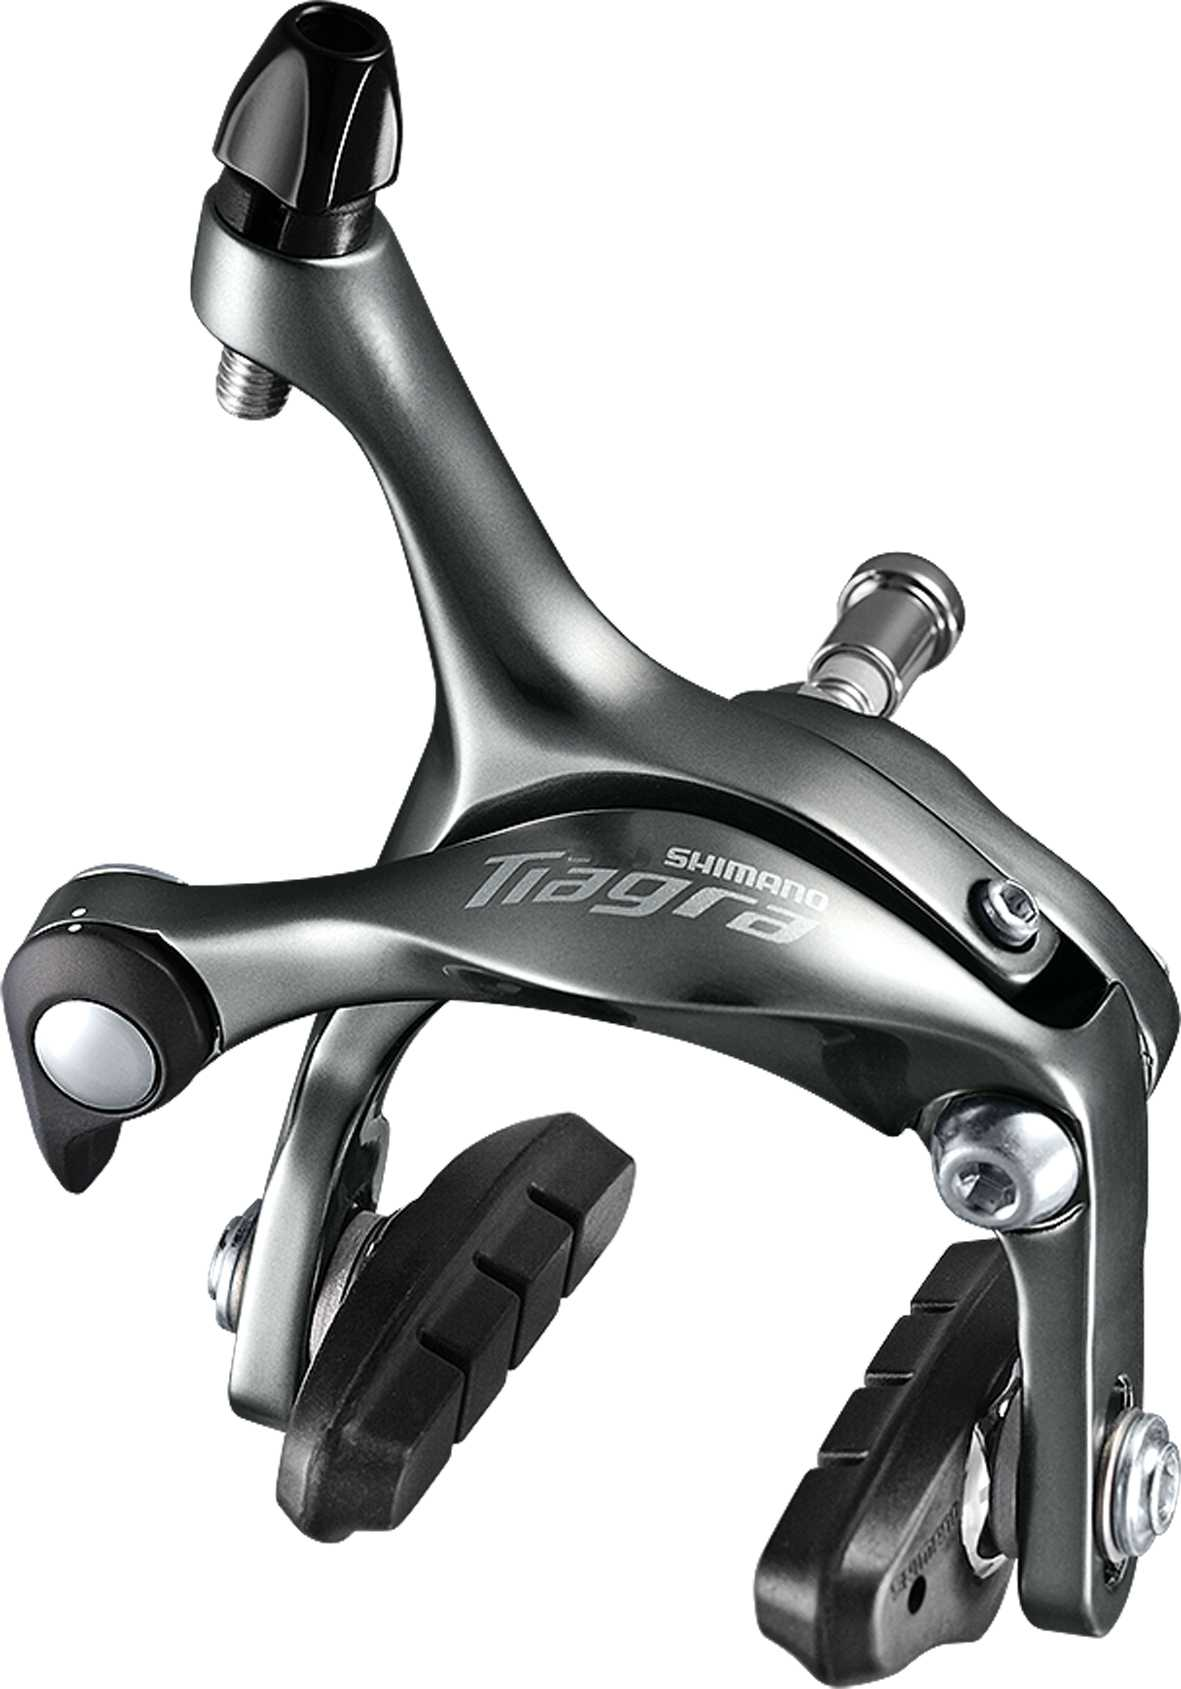 Shimano Tiagra 4700  49mm Drop Dual Pivot Front Brake Calliper - Grey